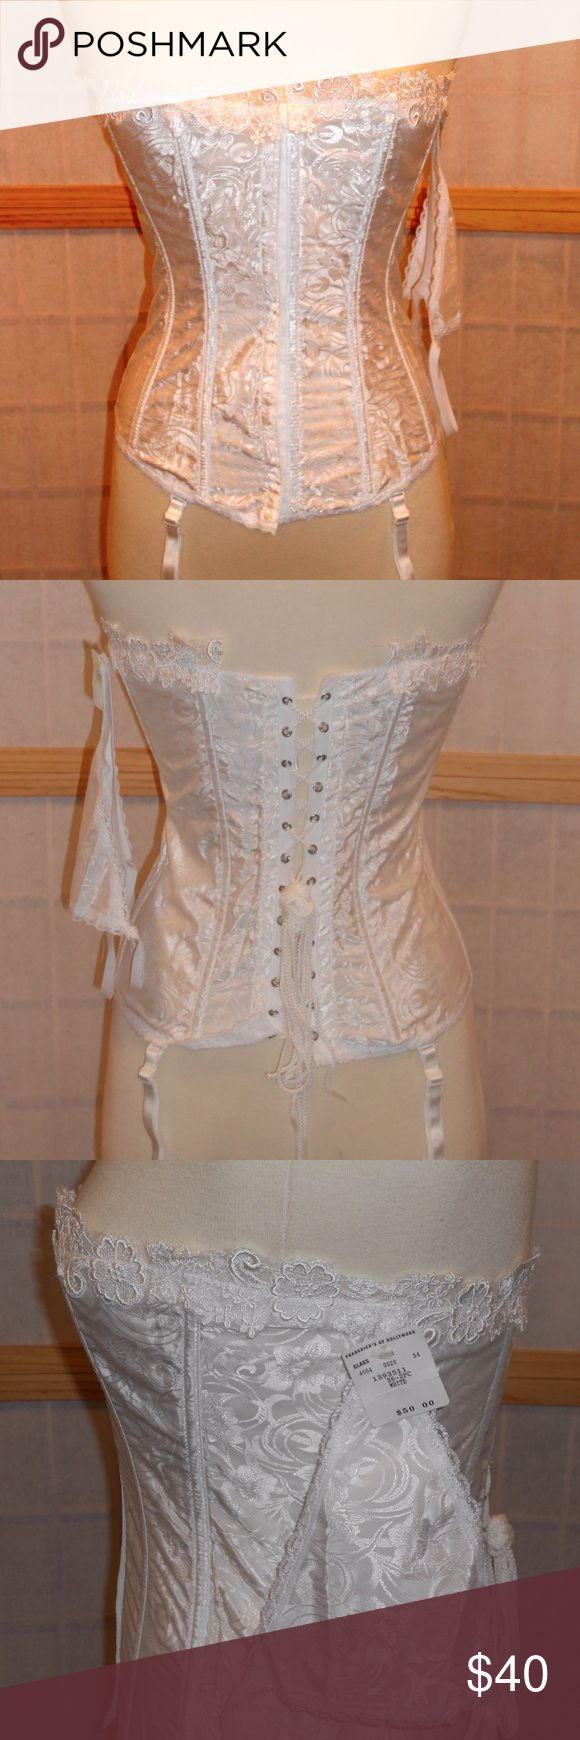 NWT Frederick's of Hollywood White Lingerie Set Brand new Frederick's of Hollywood 2-piece lingerie set. Size 36, no cup given. Included is a white strapless satin corset/bustier with matching white g-string. The strapless corset has a white flower pattern on it and a delicate lace trim emerges at the top. The corset comes with 4 removable and adjustable garters. The front closes with a row of eye and hook clasps and ties in the back. Style #FRD20. Made in USA. Hand wash only. Frederick's of…